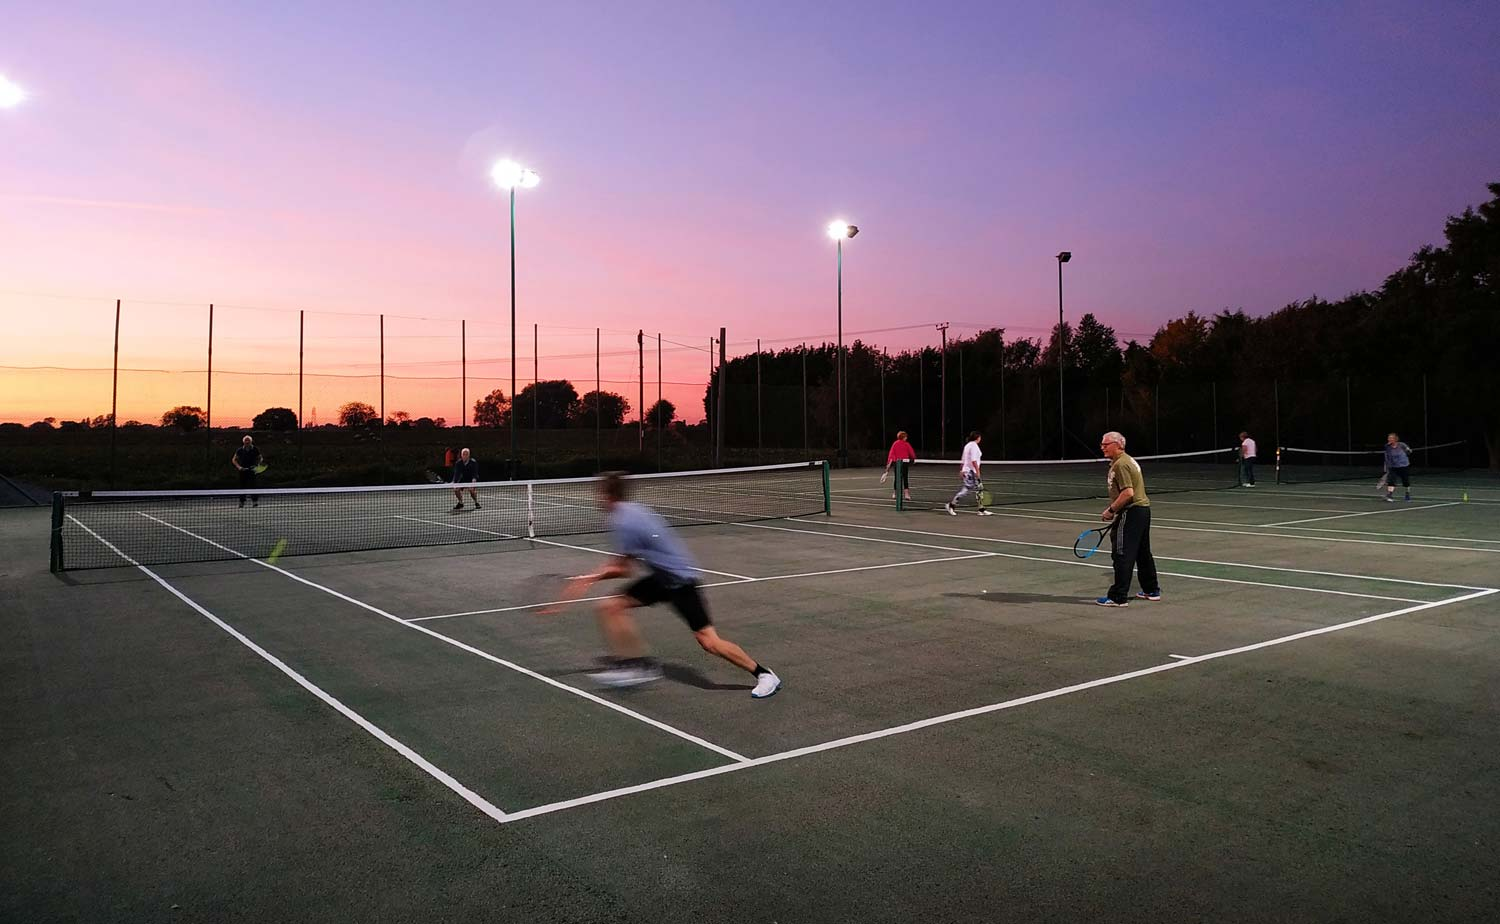 Wistow Tennis Club night